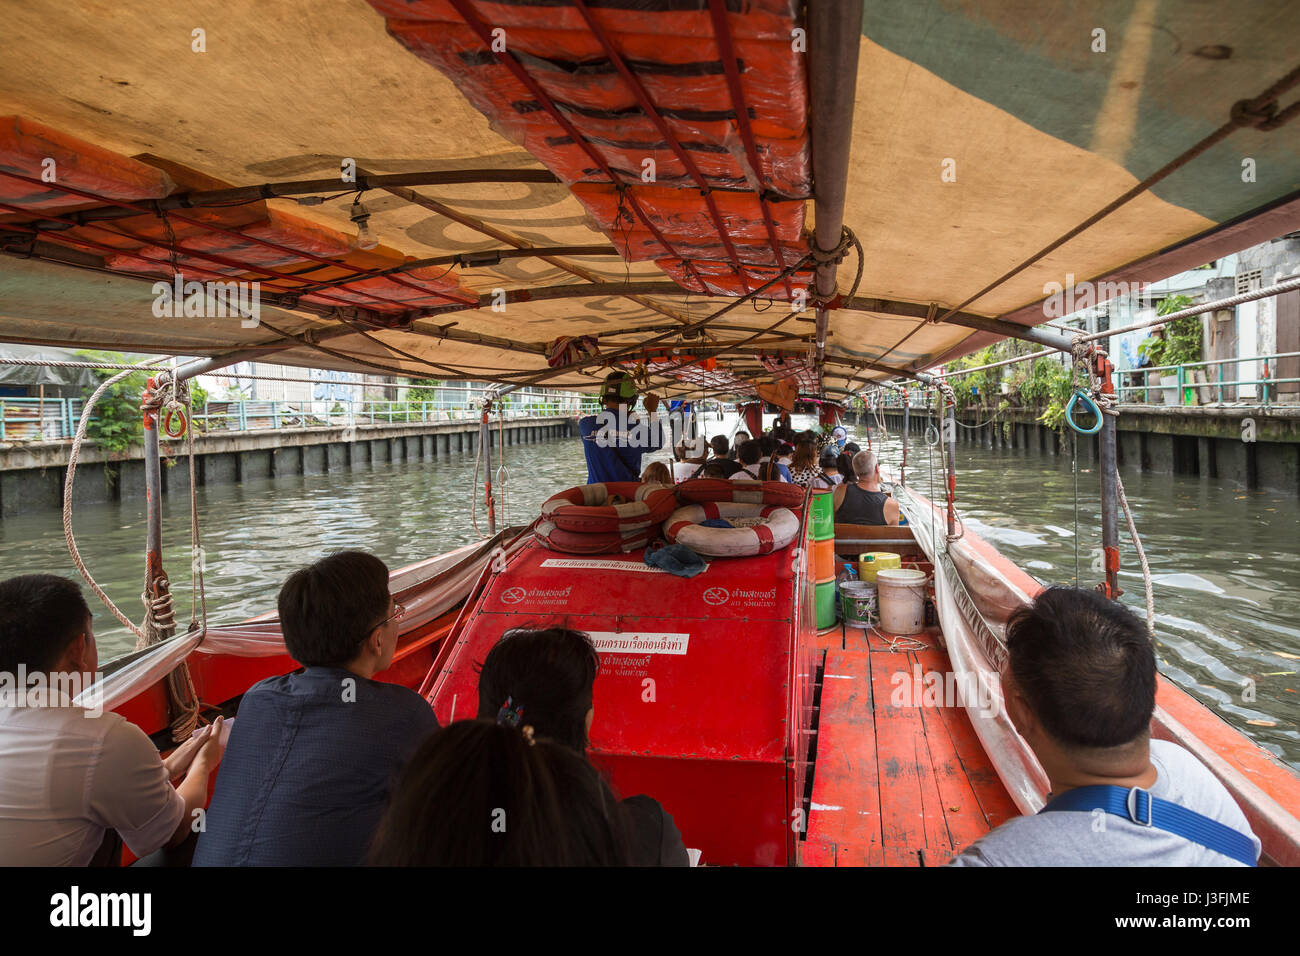 Several people on a khlong canal boat in Bangkok, Thailand. Stock Photo